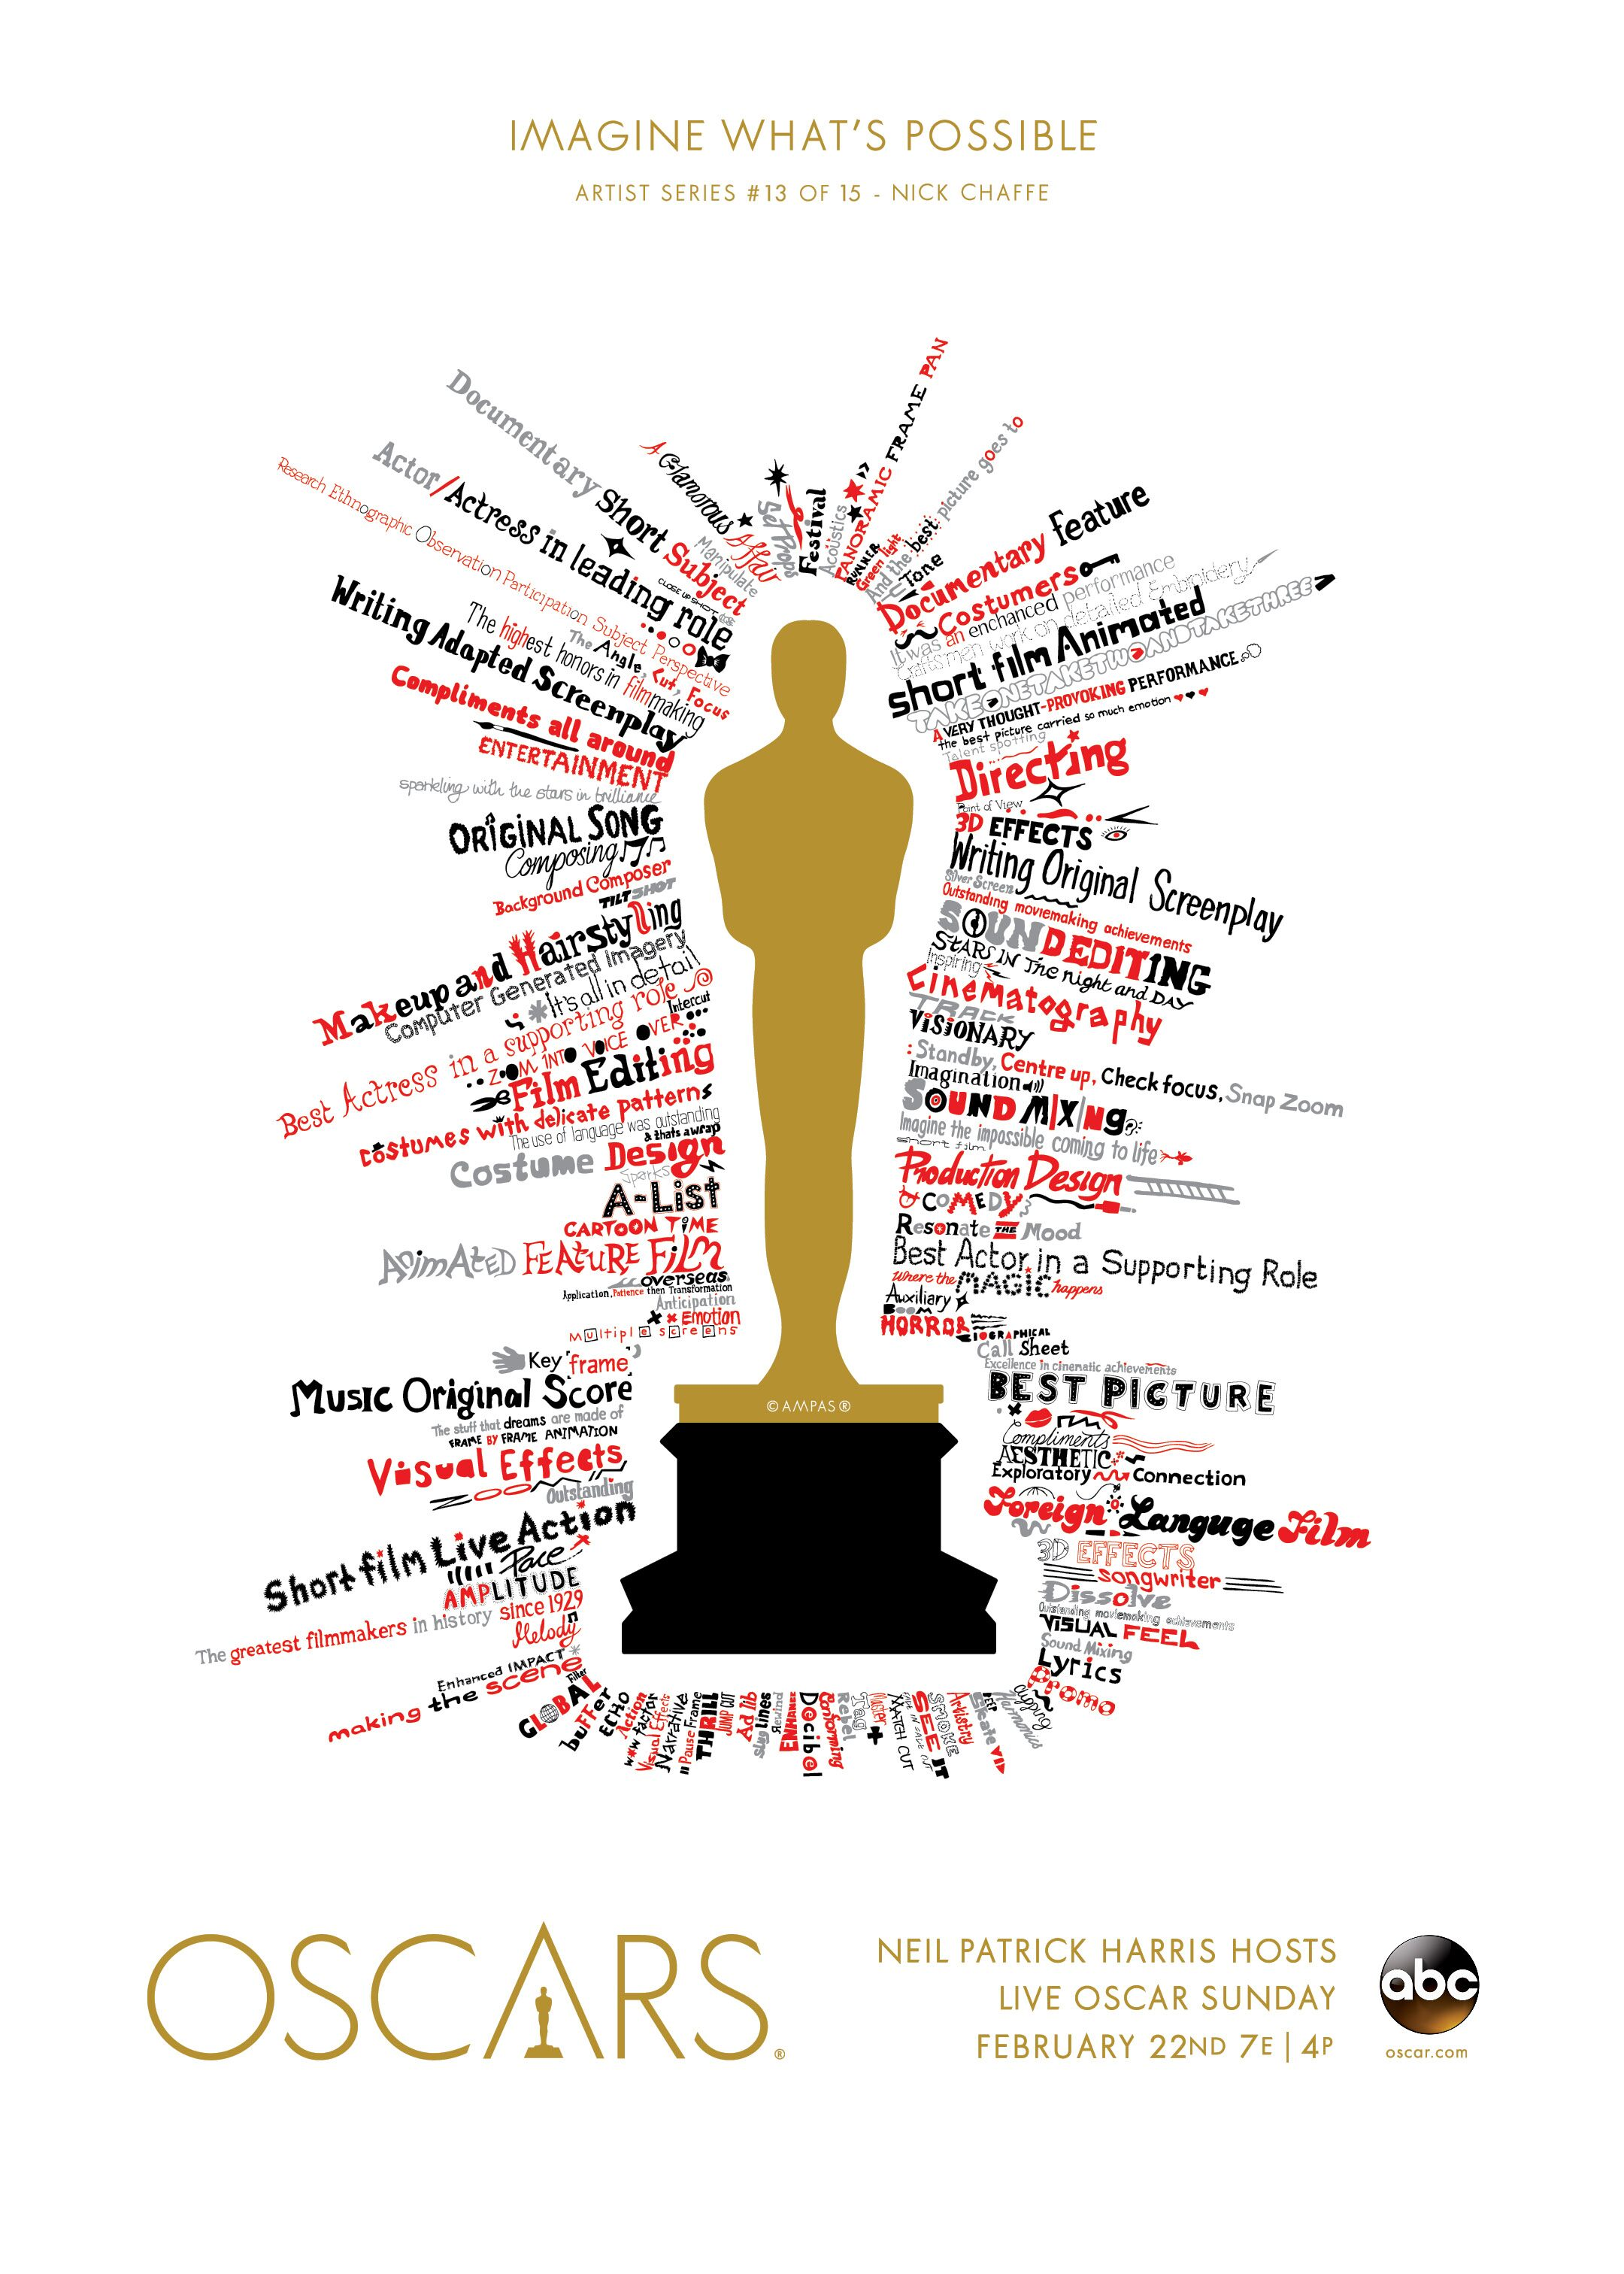 """So much effort and magic goes into making a film, and it's always heartening to watch the Oscars reward and celebrate the many people involved.  I've illustrated typography representing the many emotions around the event, so each award category can shine off the iconic gold beacon that is the Oscar."" <br /><br /> This design is part of <a href=""/art-gallery"">The Oscars Art Gallery</a>, a collection of art pieces inspired by this year's show and the phrase, ""Imagine What's Possible."" The most shared designs will be featured on the Oscars red carpet."